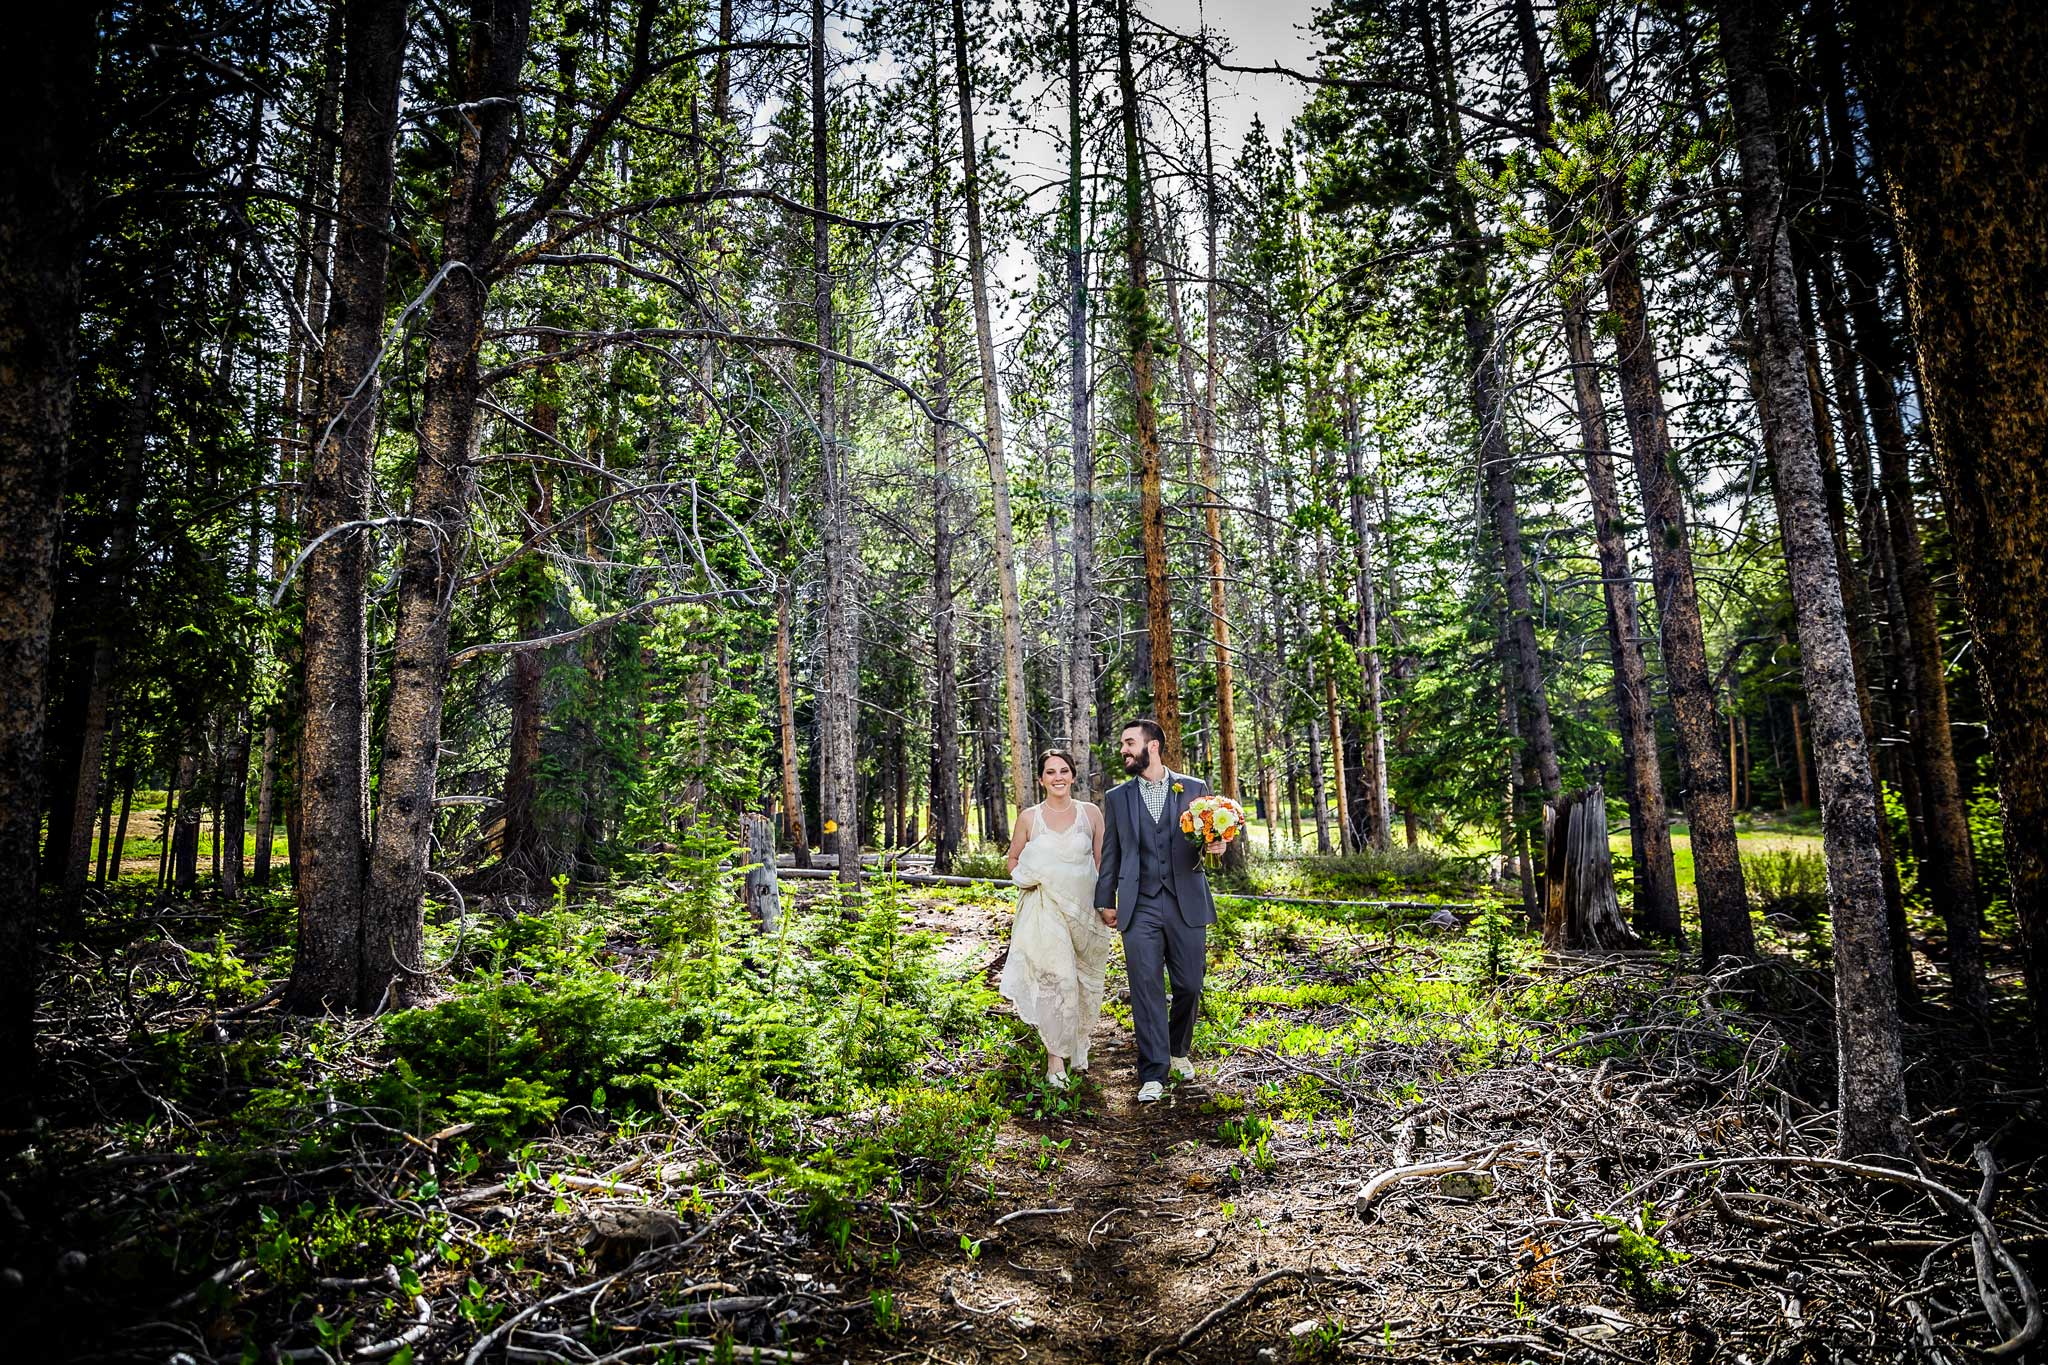 Bride and groom in Breckenridge, CO